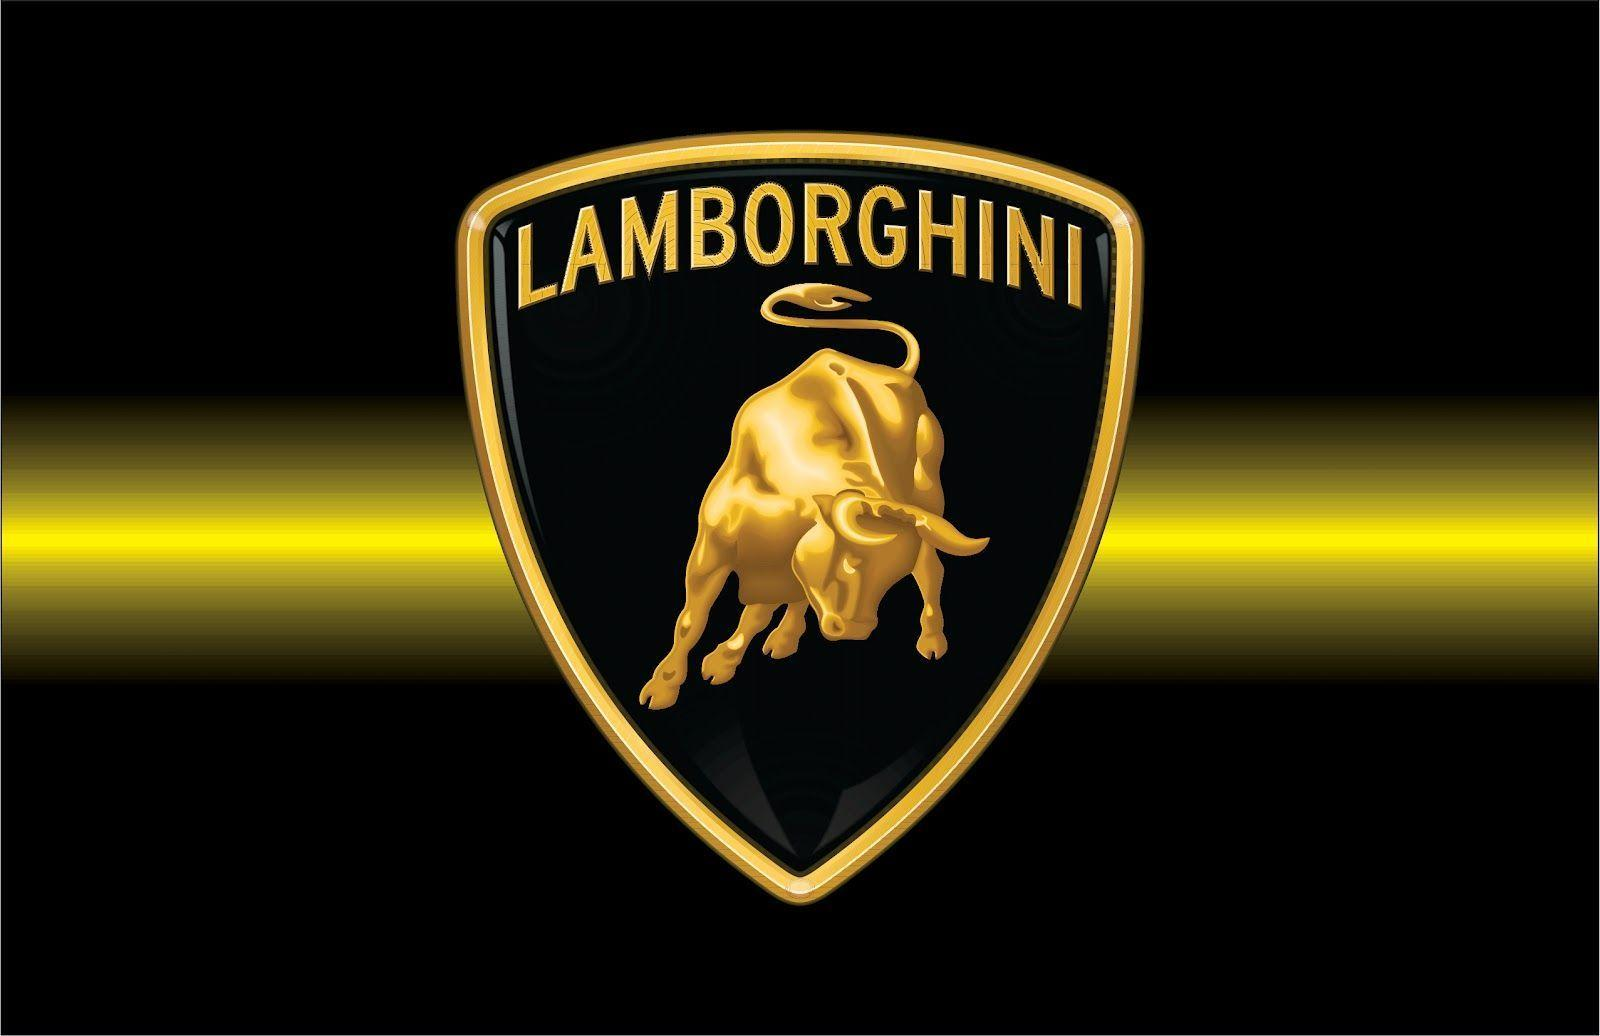 Lamborghini Logo Black Wallpaper Free Download 6455